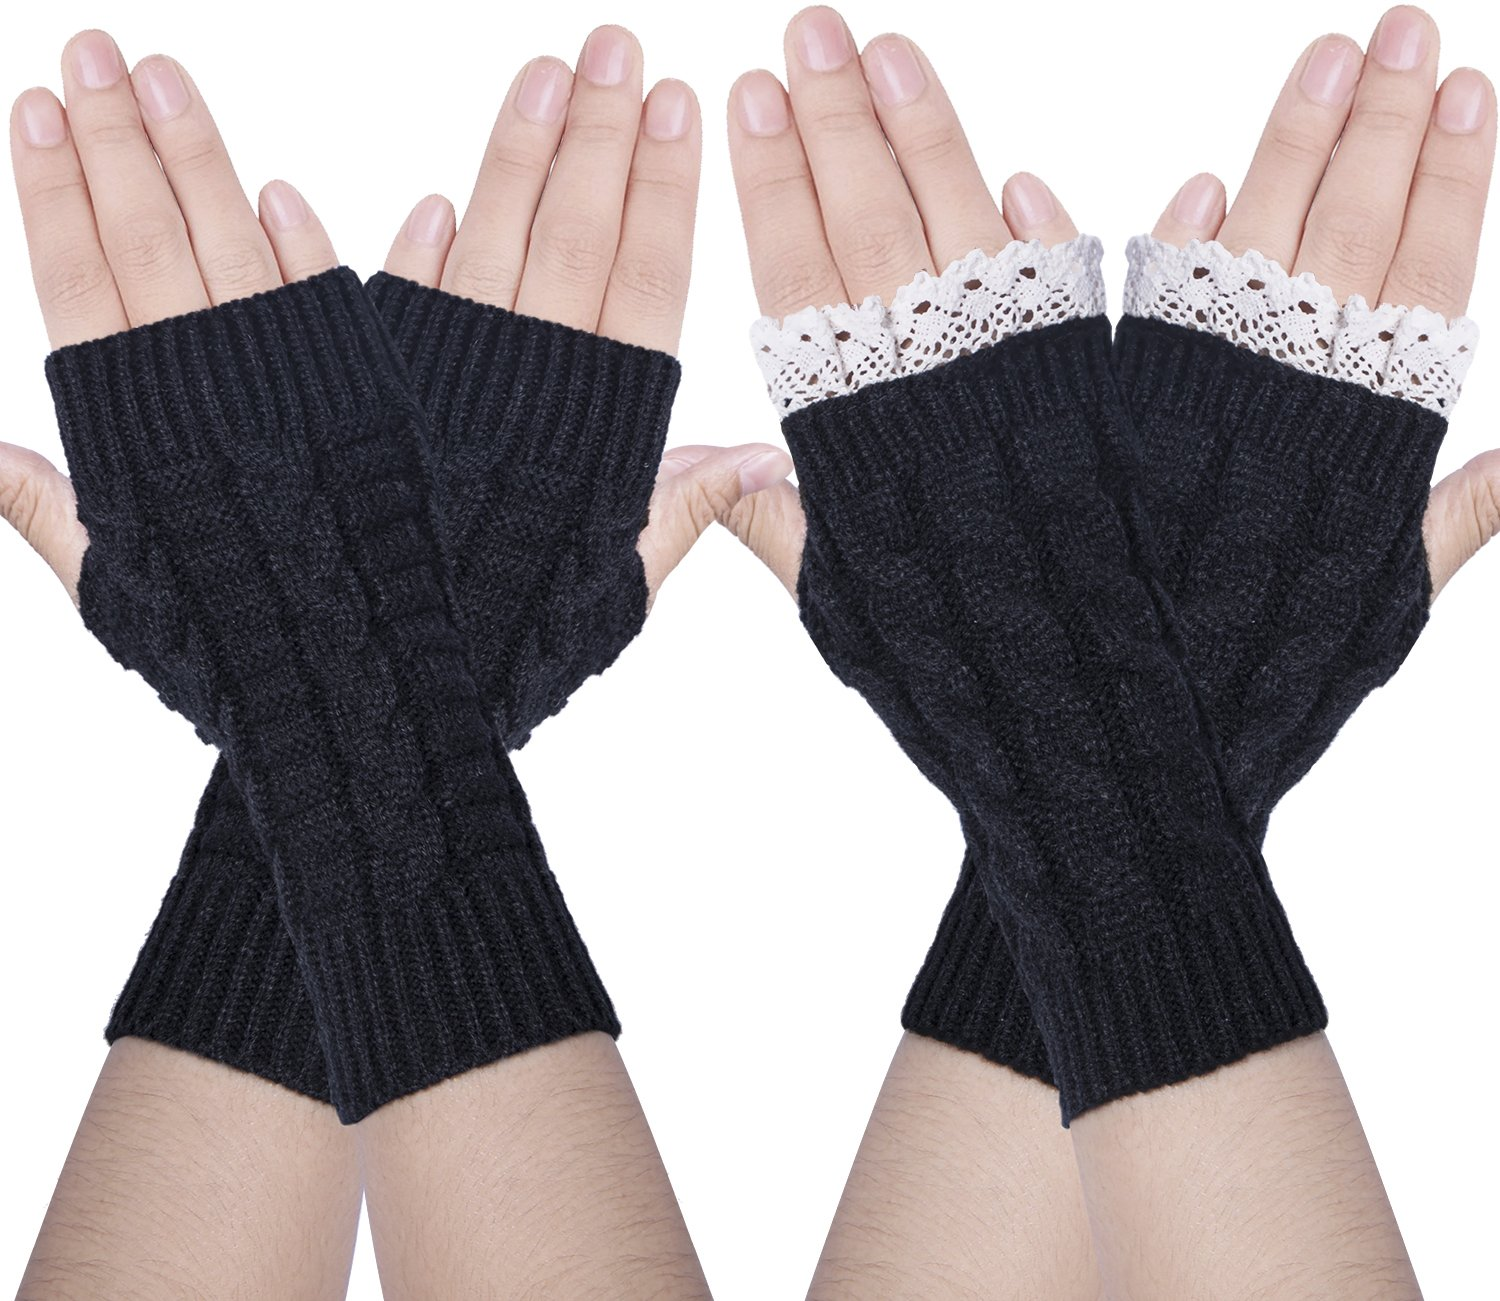 Chalier 2 Pairs Womens Winter Knit Fingerless Gloves Thumbhole Short Arm Warmer Black One Size SMR-044-1